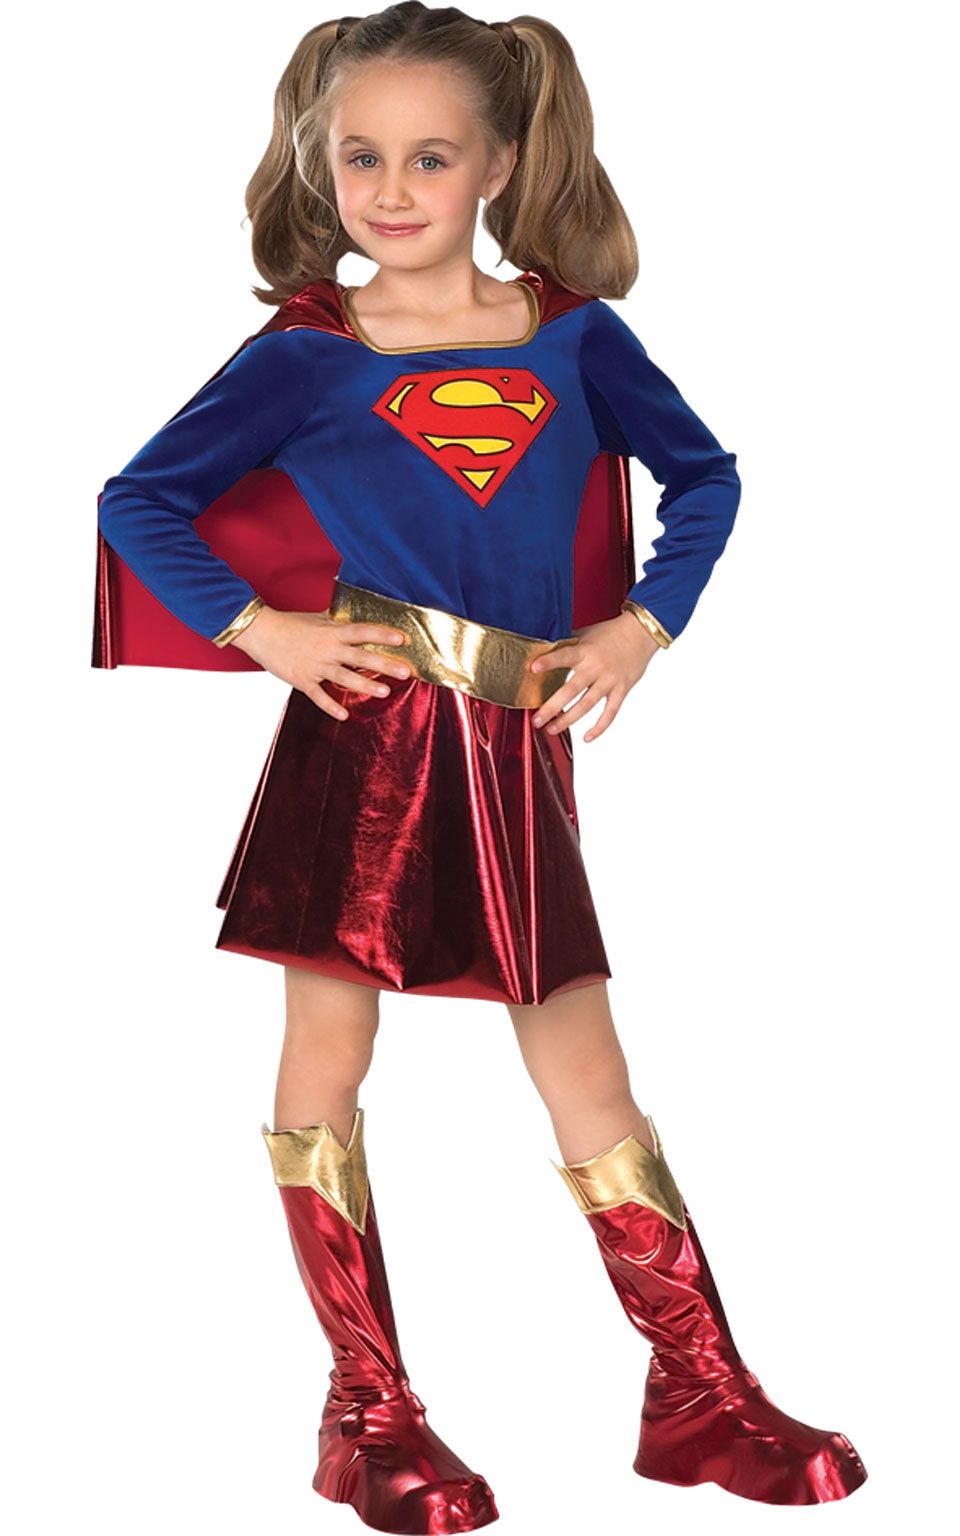 Childs Supergirl Costume